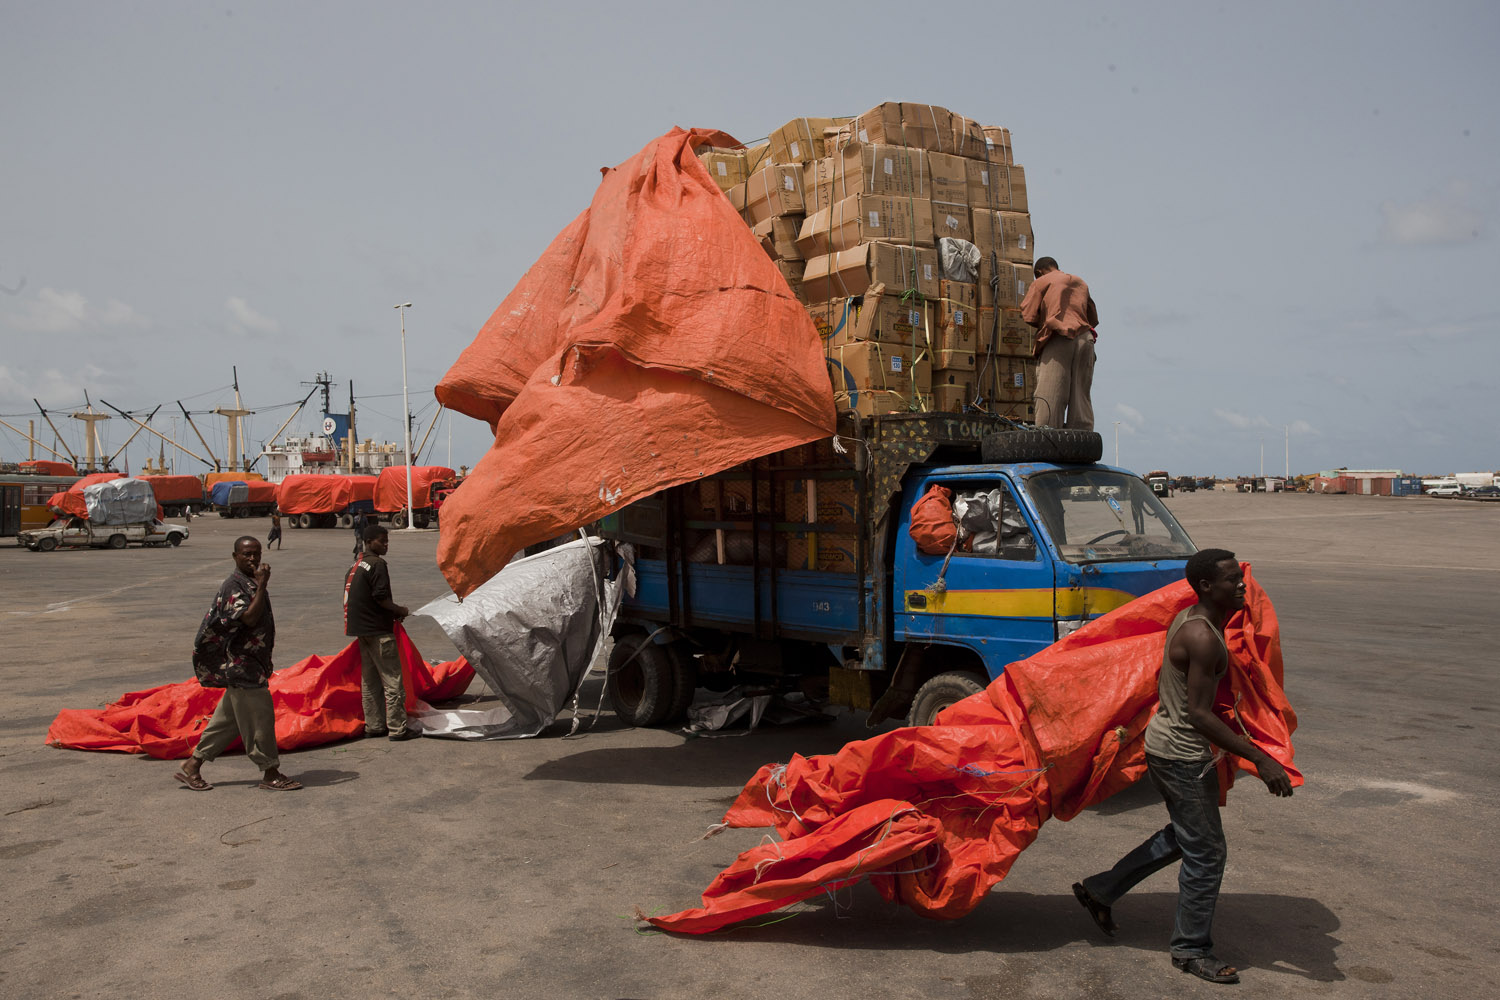 Somali men prepare to pack a truck full of goods at the port in Mogadishu.